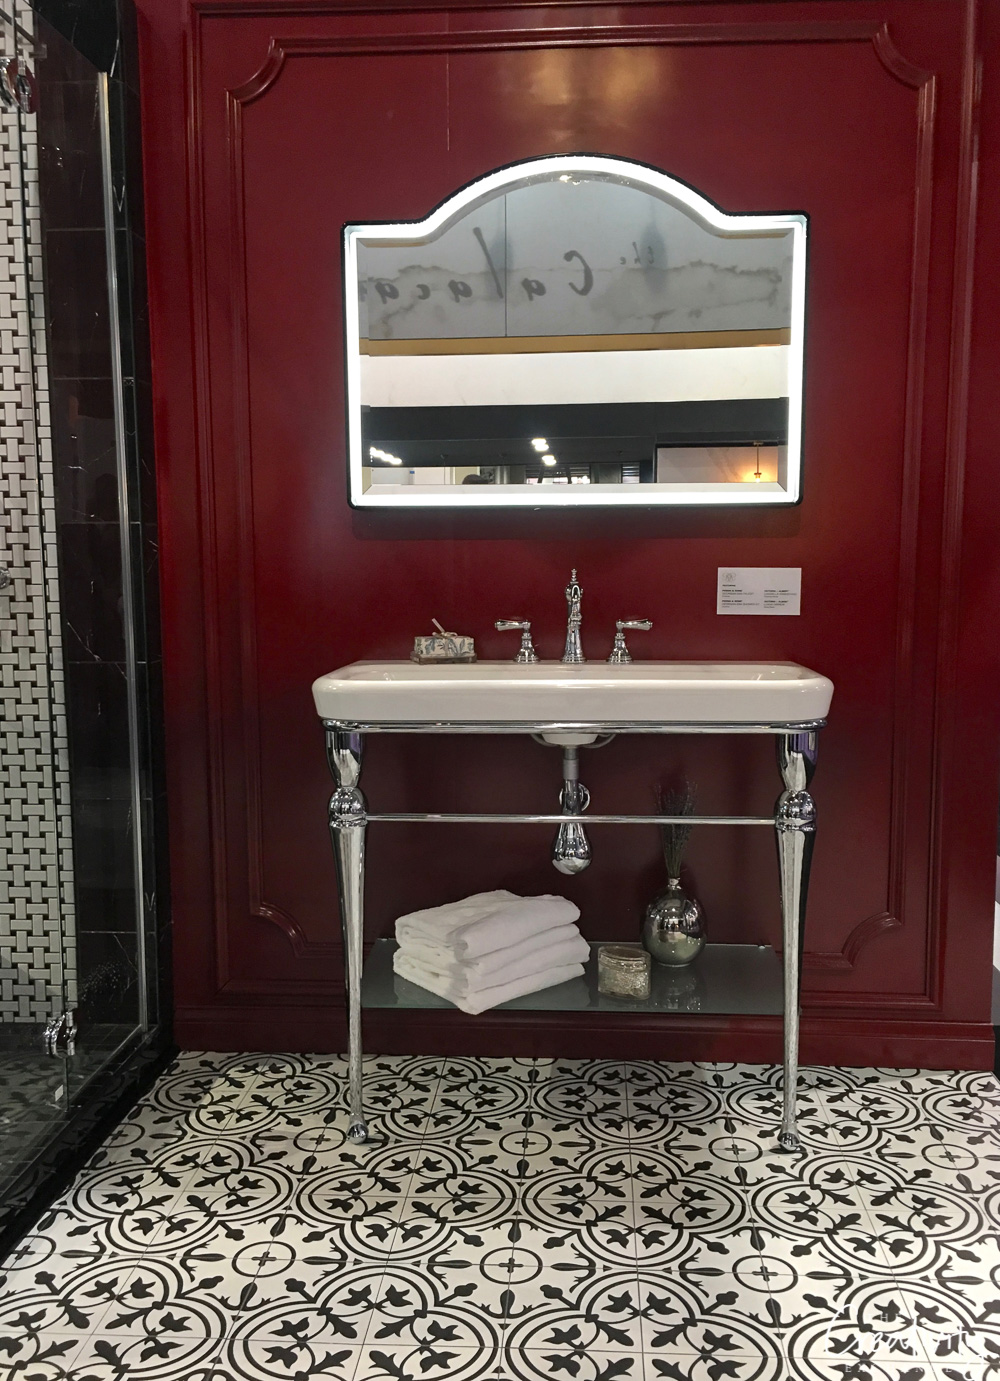 Bathroom sink mixed with black and white cement floor